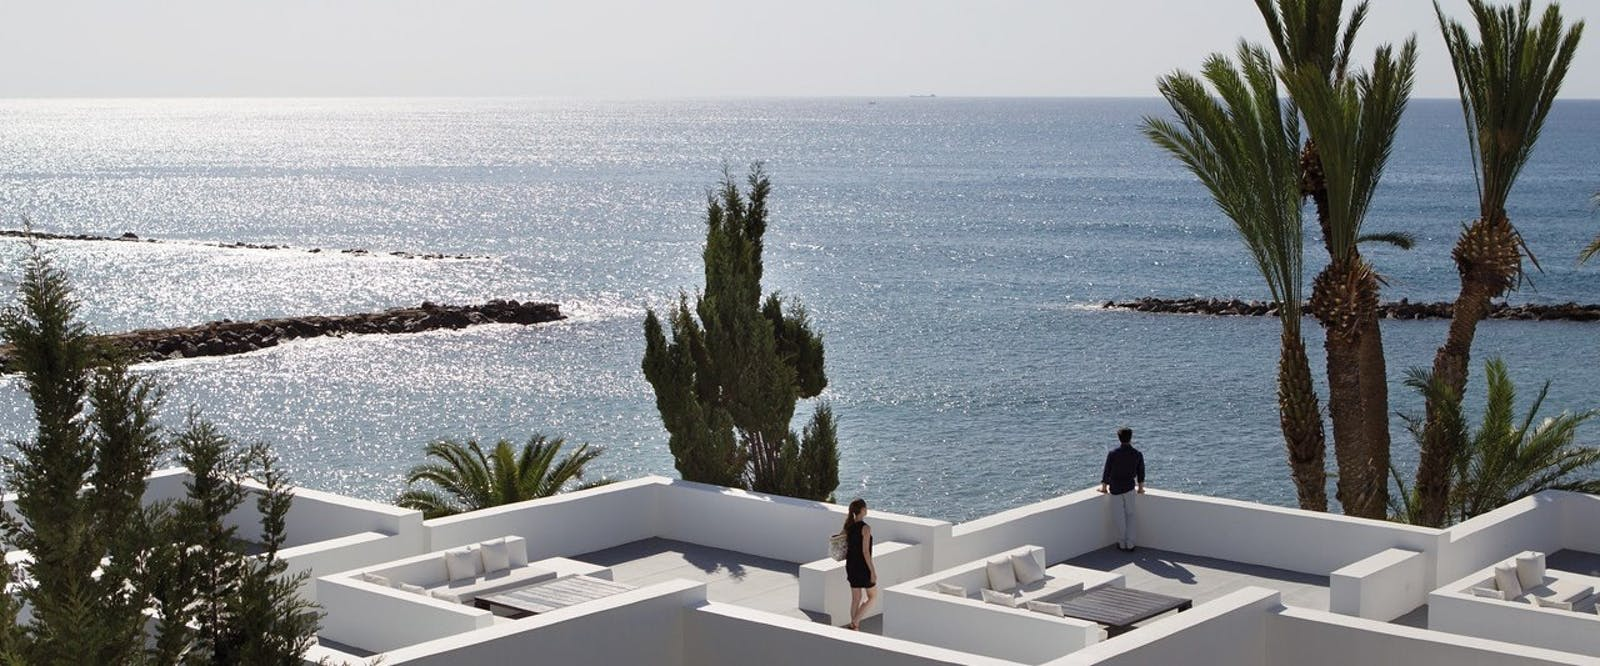 Beautiful Rooftop View at Almyra, Paphos, Cyprus